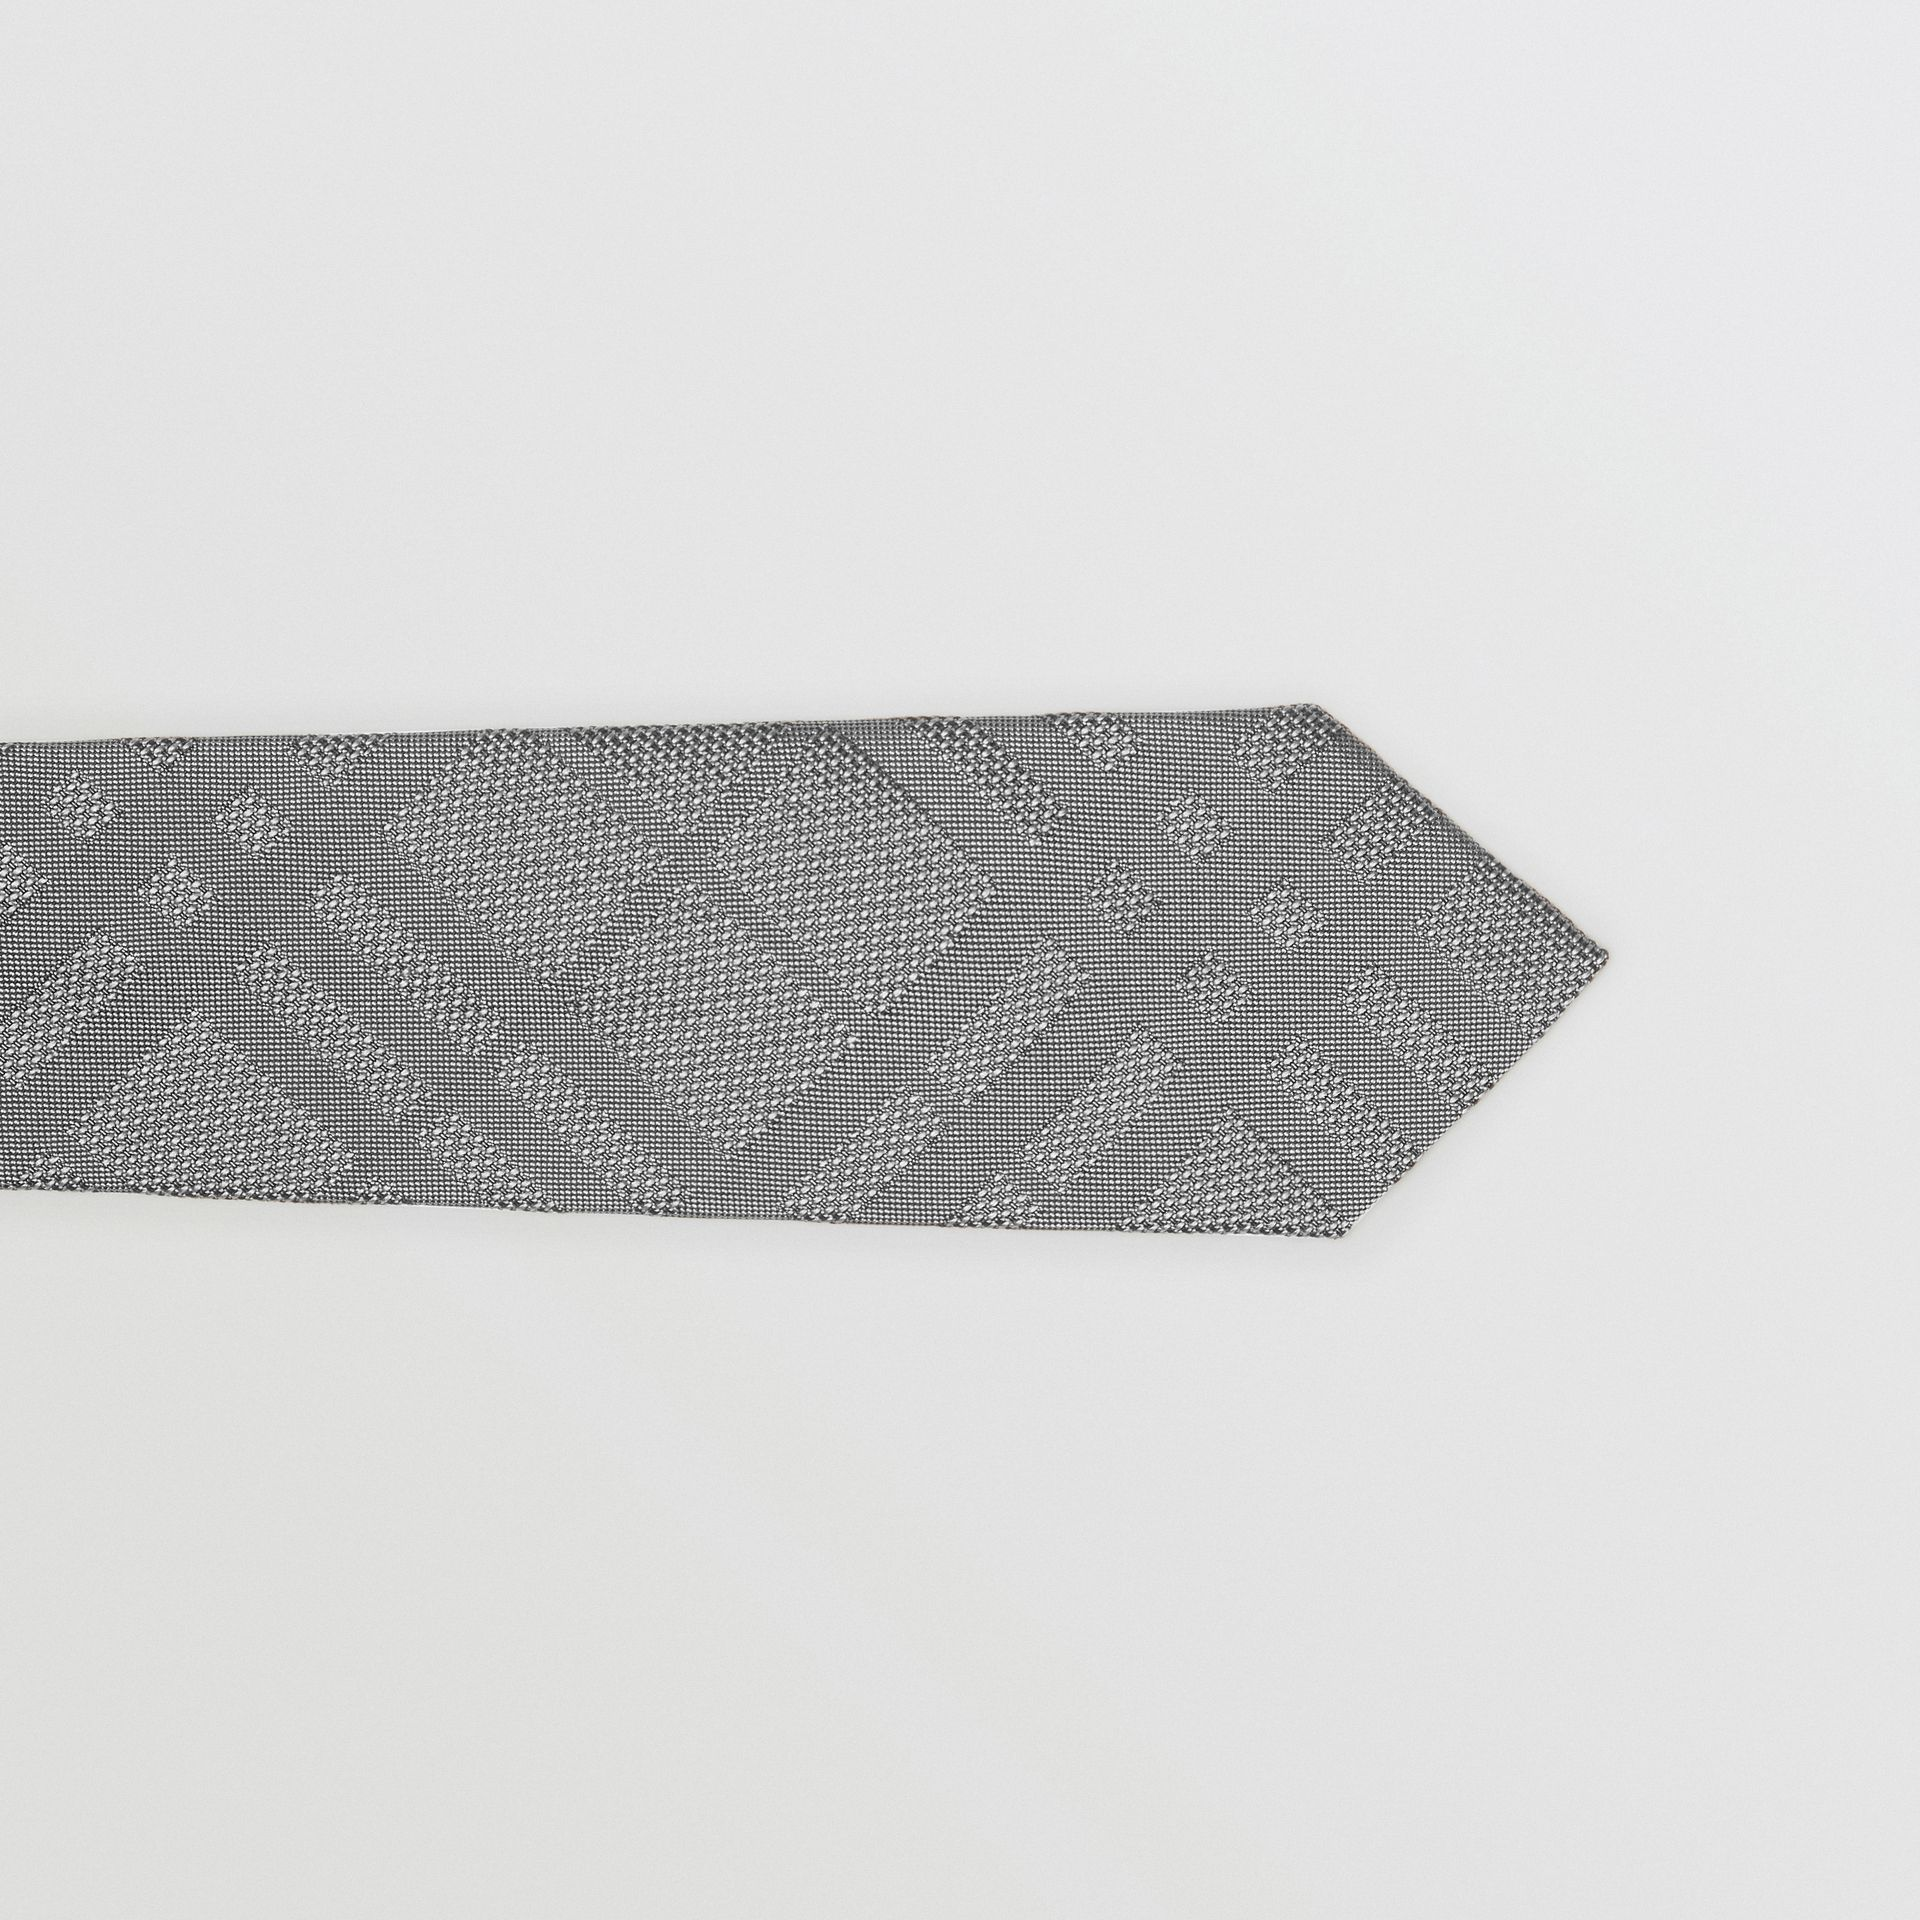 Classic Cut Check Silk Jacquard Tie in Charcoal - Men | Burberry United Kingdom - gallery image 1